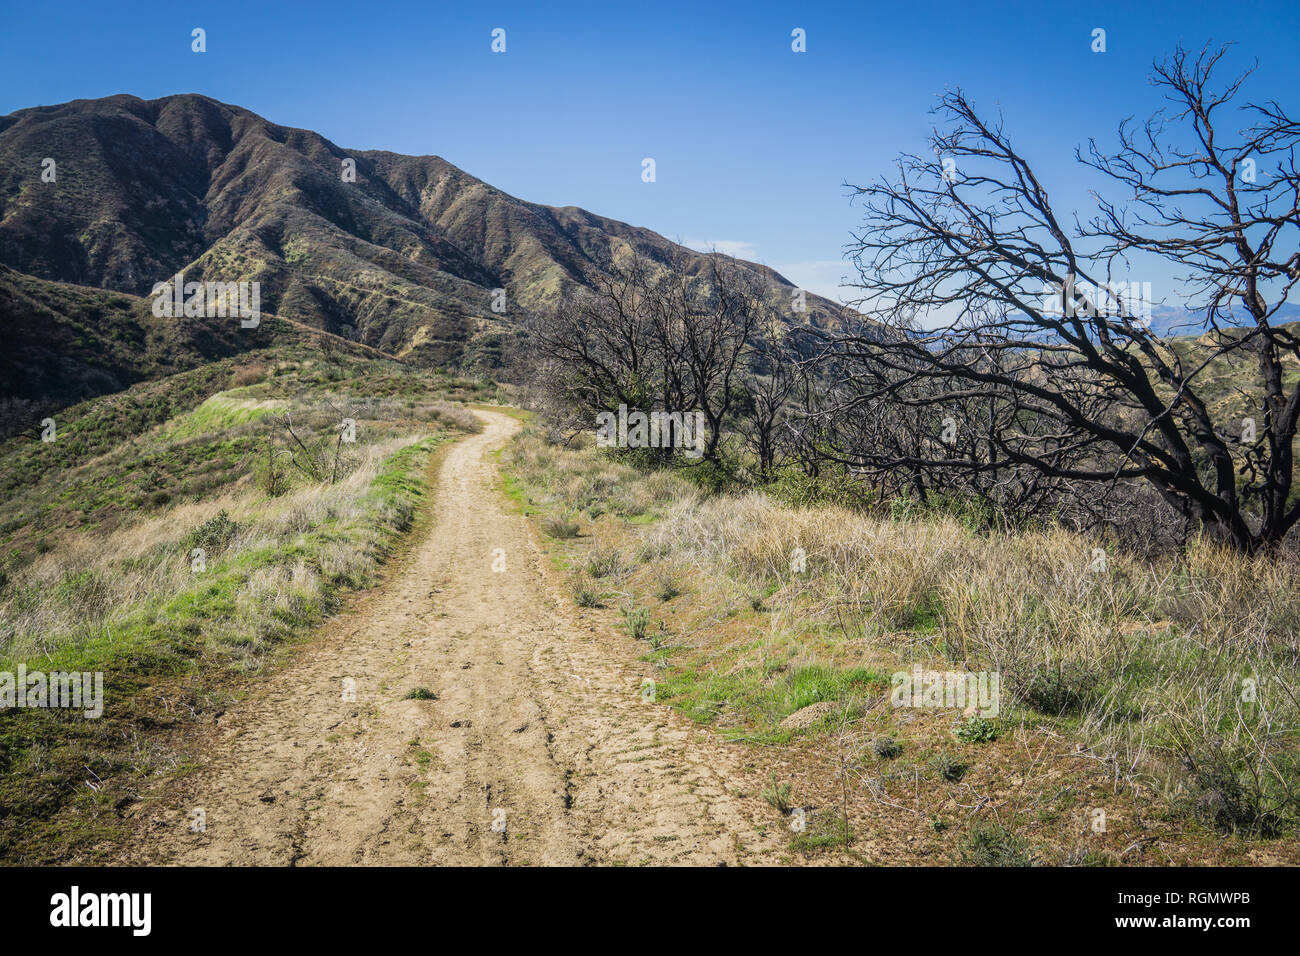 Remains of burned trees stand beside a dirt trail on a ridge in southern California hills. - Stock Image